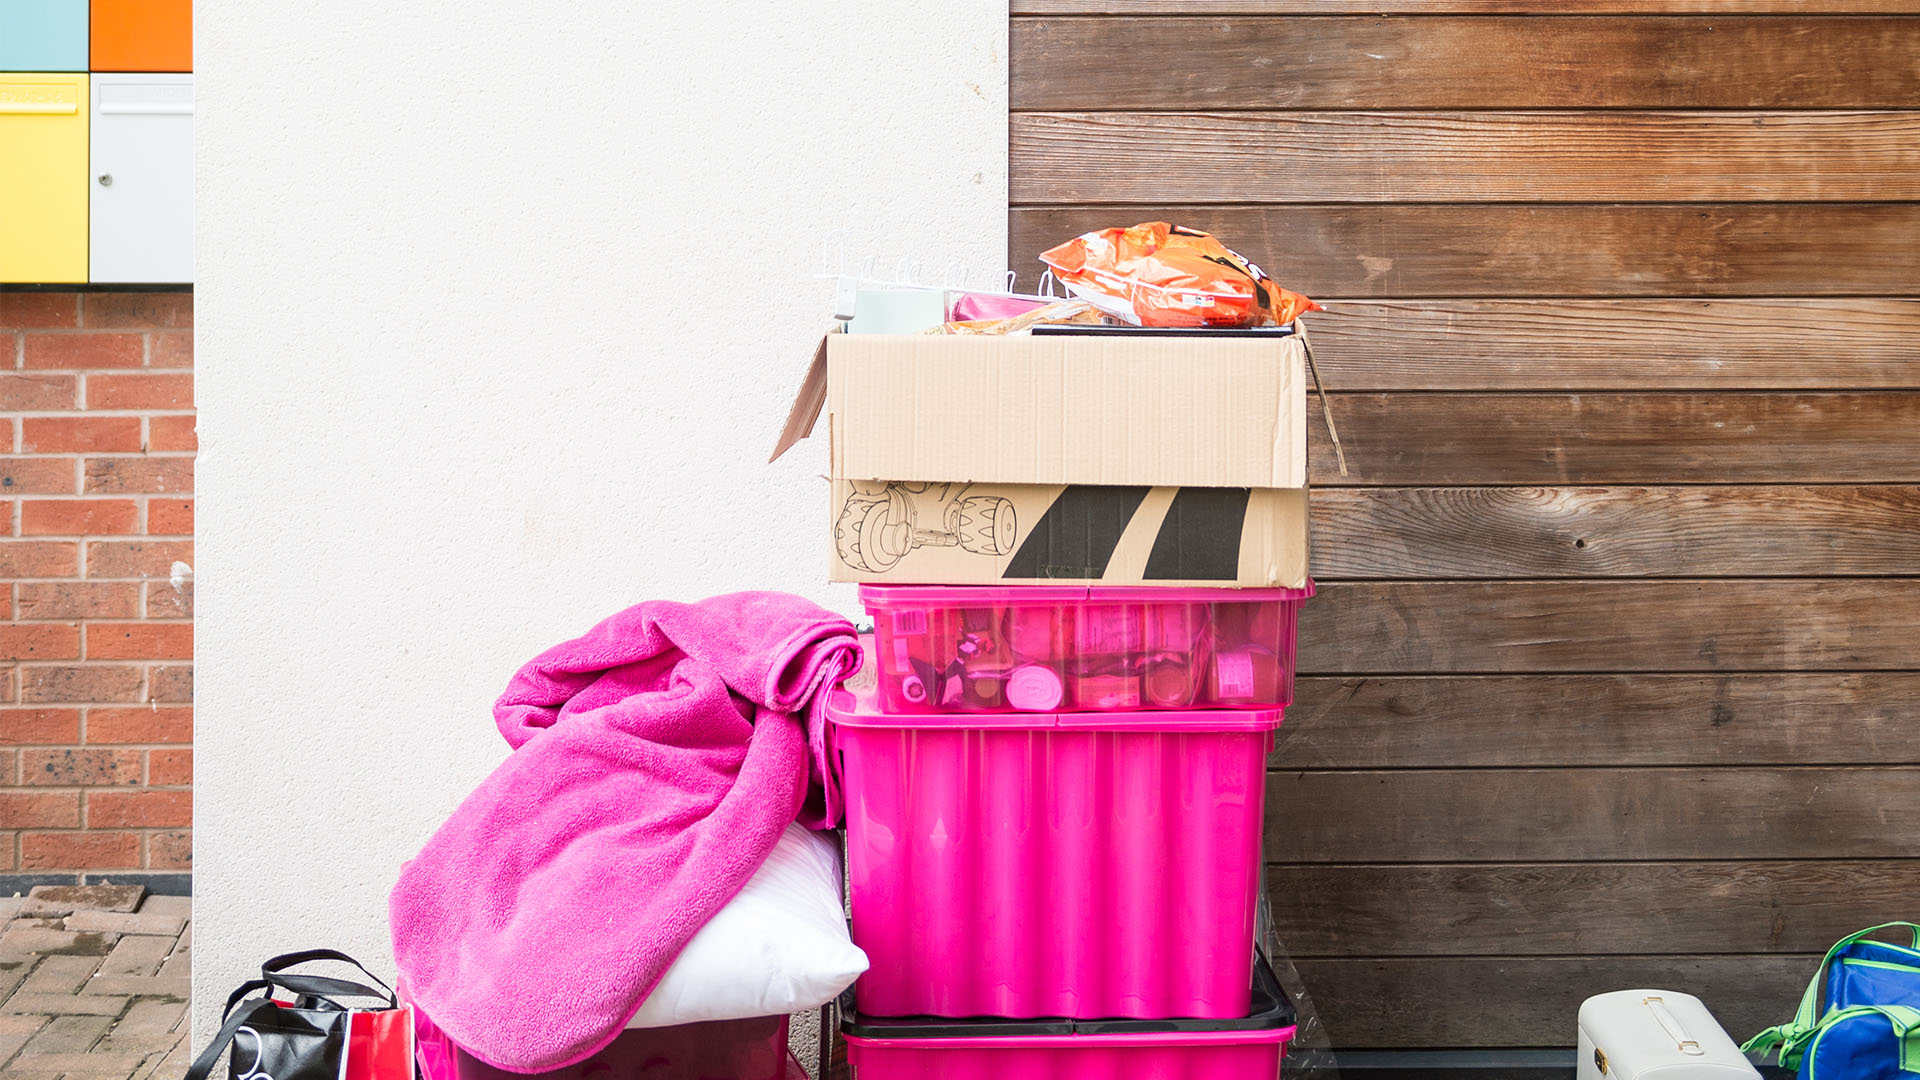 Freshers 2019: What to pack?